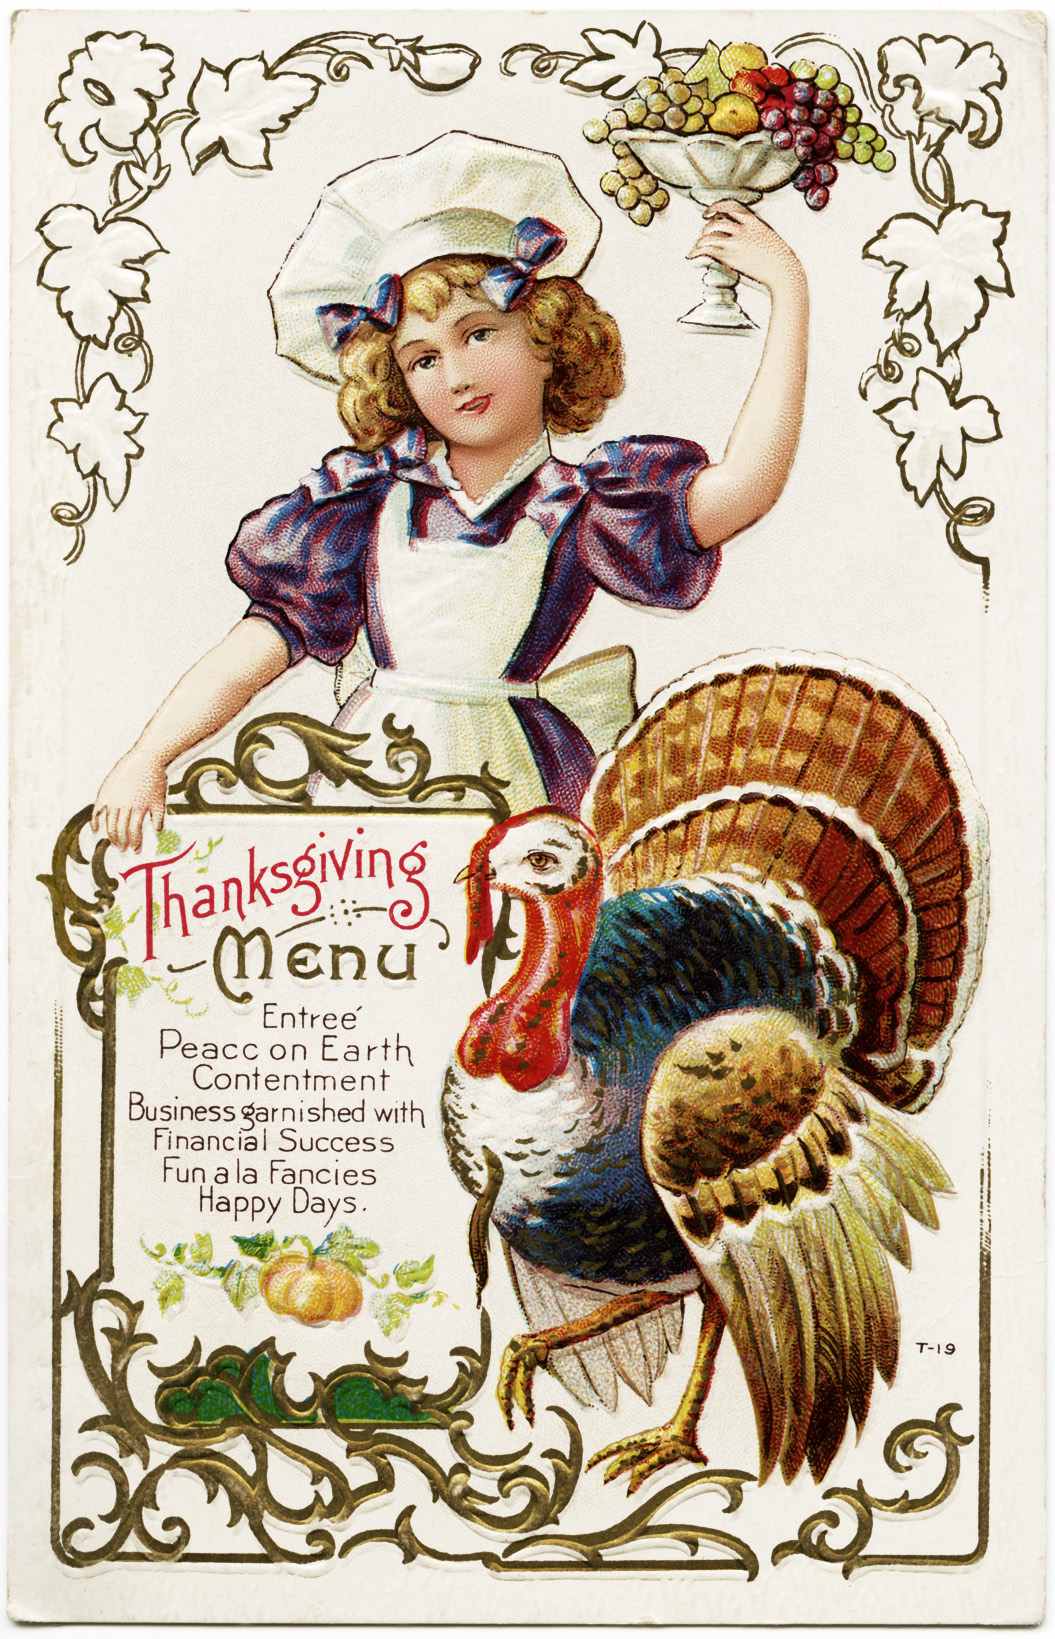 Old fashioned thanksgiving clipart clip art freeuse download Free Vintage Thanksgiving Menu Postcard - Old Design Shop Blog clip art freeuse download